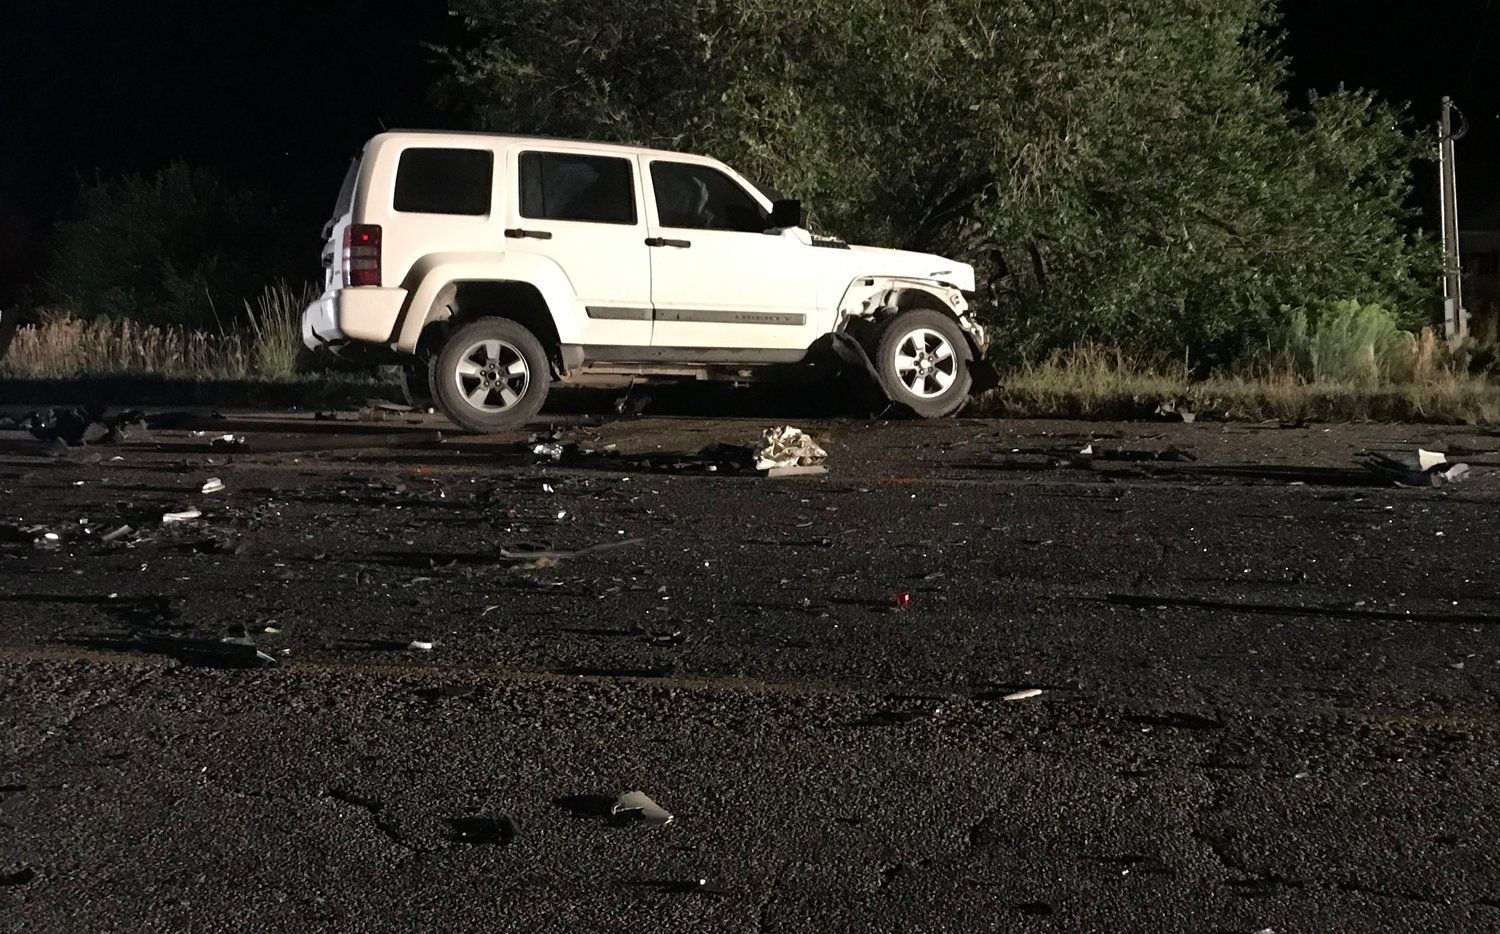 Kylie Rae Harris, 30, died in a crash just north of Taos, N.M., her publicist confirmed. Authorities said a 16-year-old girl from nearby San Cristobal, N.M., also died.